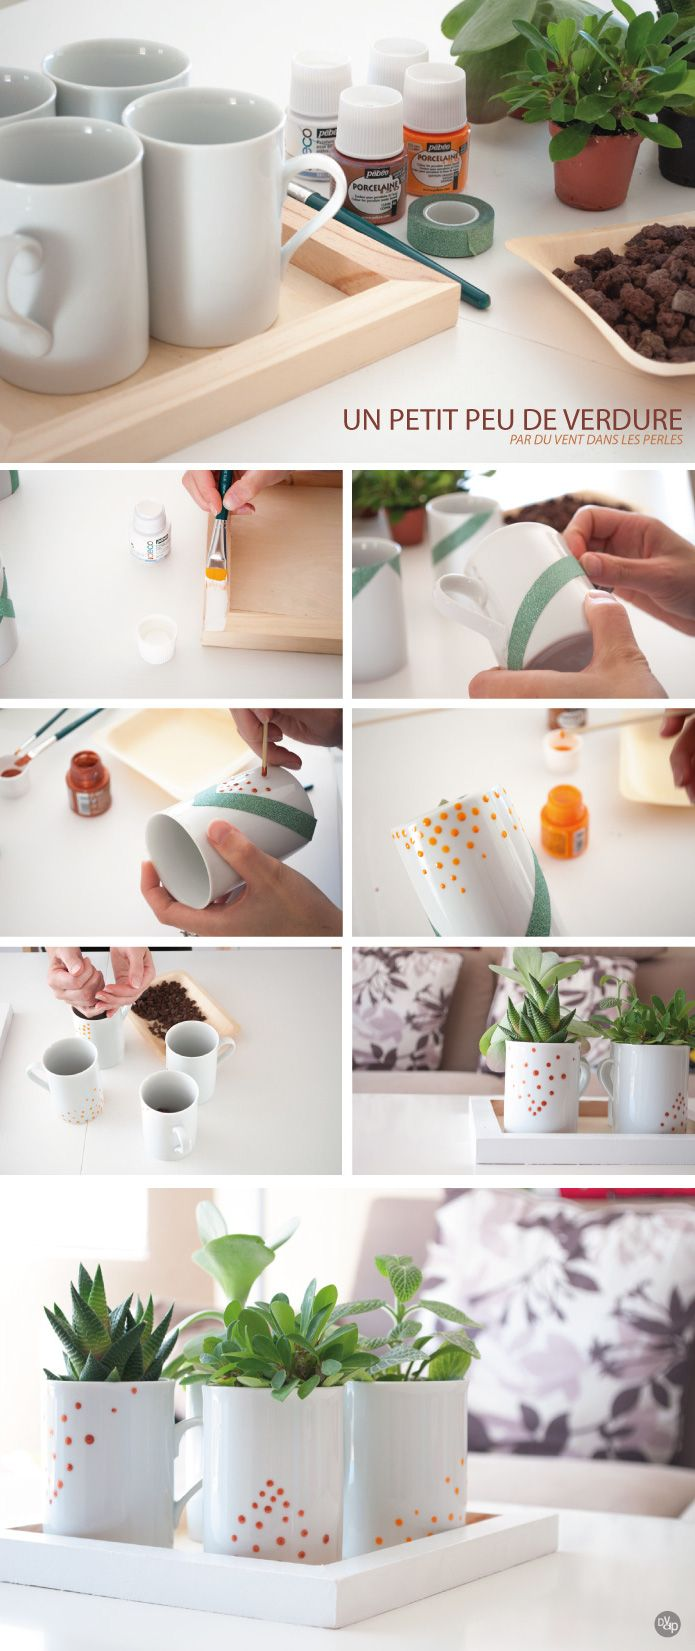 Tuto centre de table plantes vertes, tasses en porcelaine peintes et plateau en bois peint en blanc - diy foliage plants, china mugs painted and wood tray